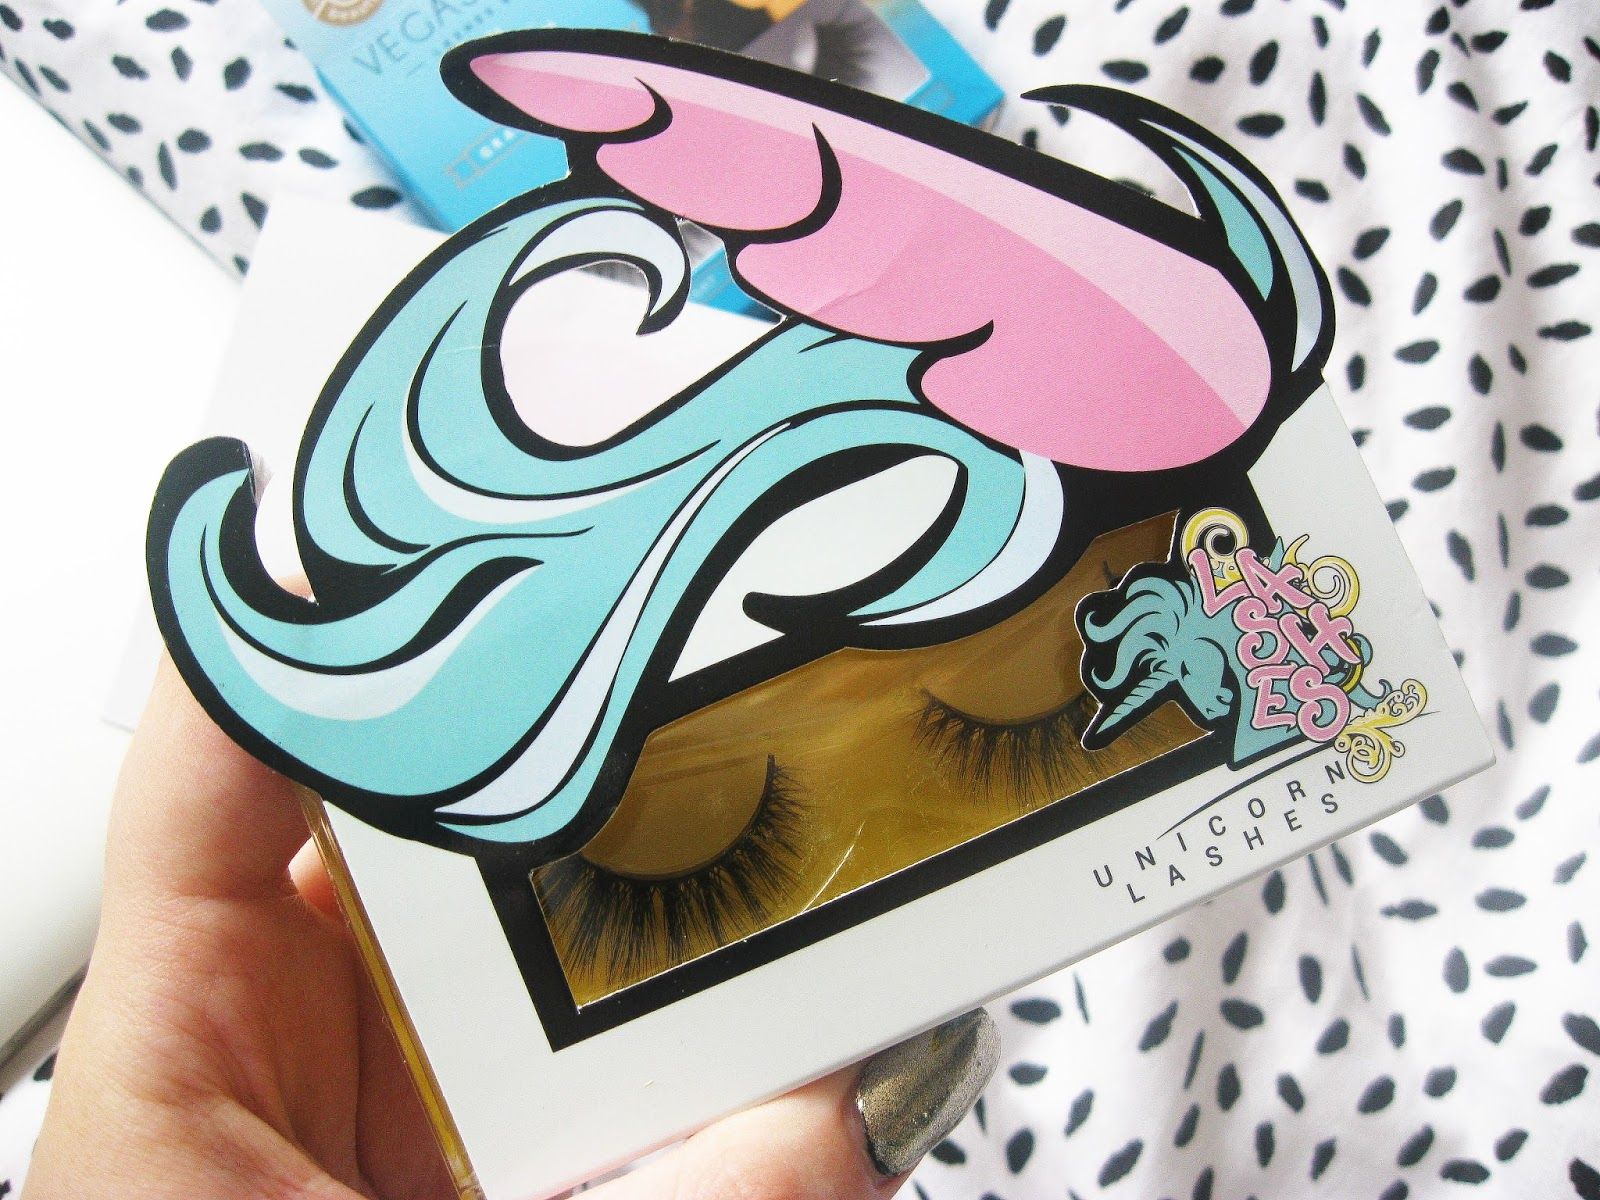 Unicorn Lashes Mink Rebel Smoke